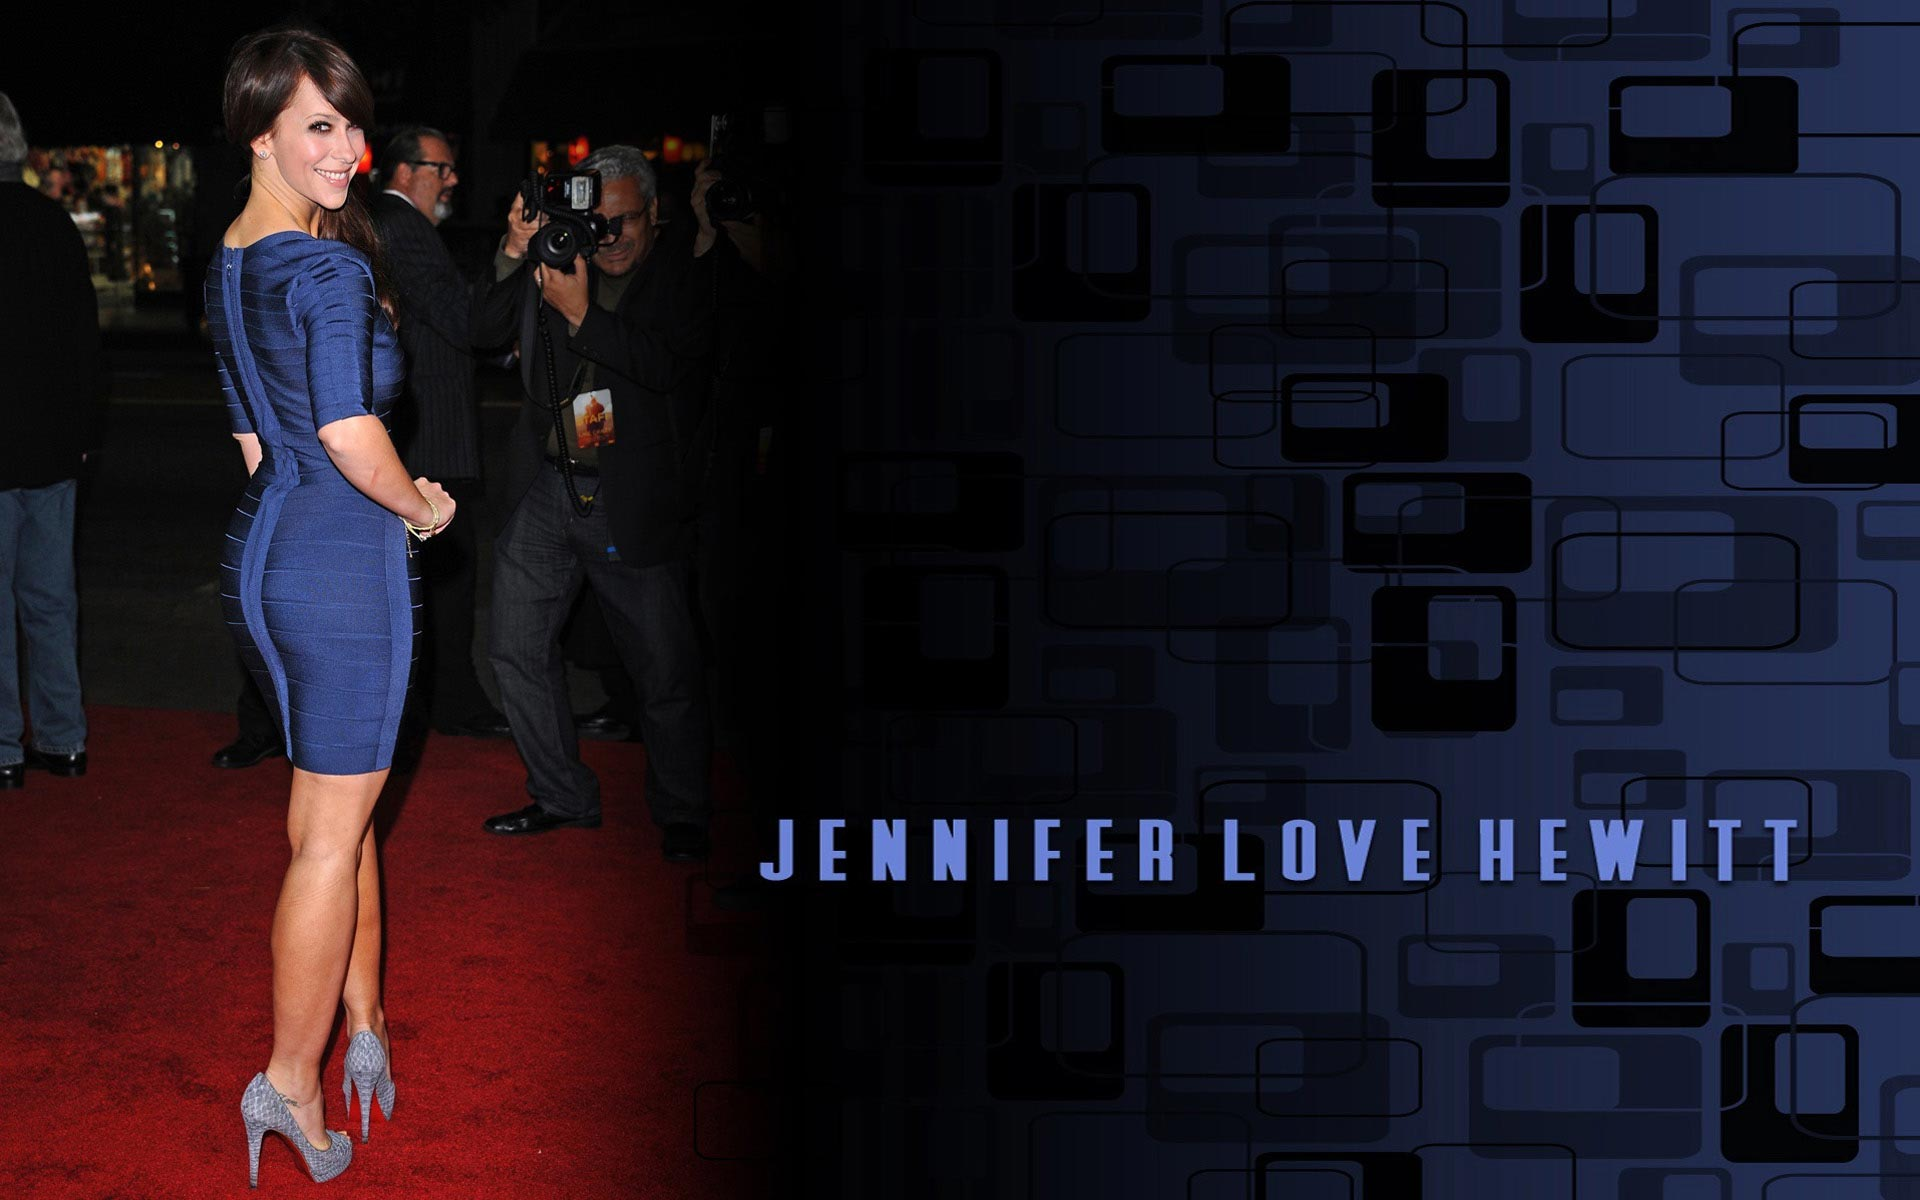 Jennifer Love Hewitt Hot Wallpapers (+12)